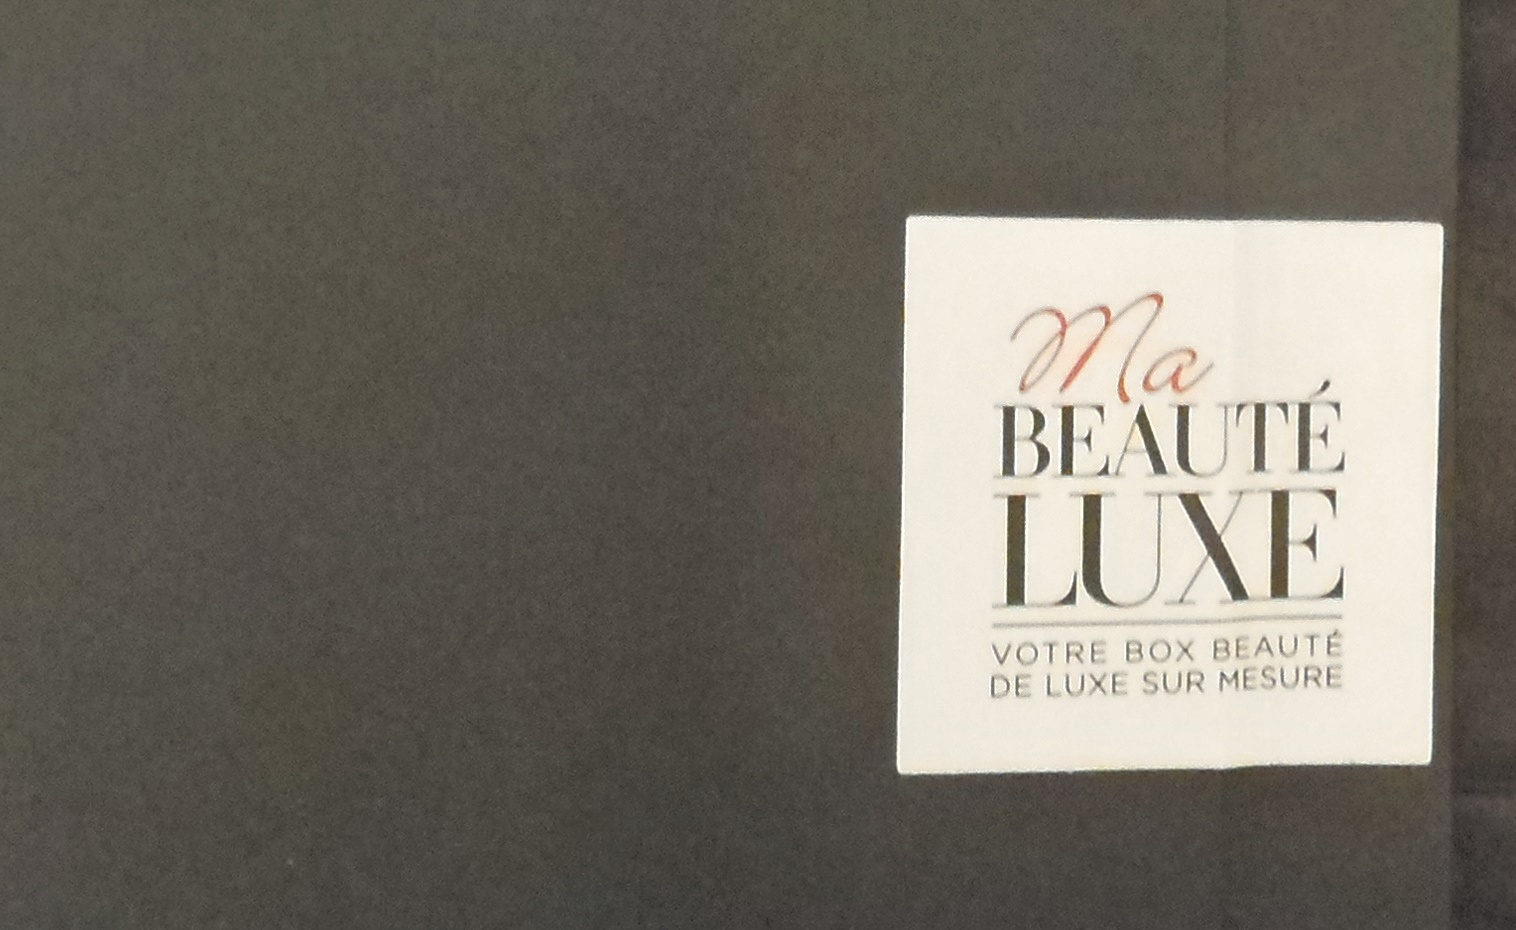 mademoiselle ho dic un nouveau concept de box avec ma beaut luxe. Black Bedroom Furniture Sets. Home Design Ideas